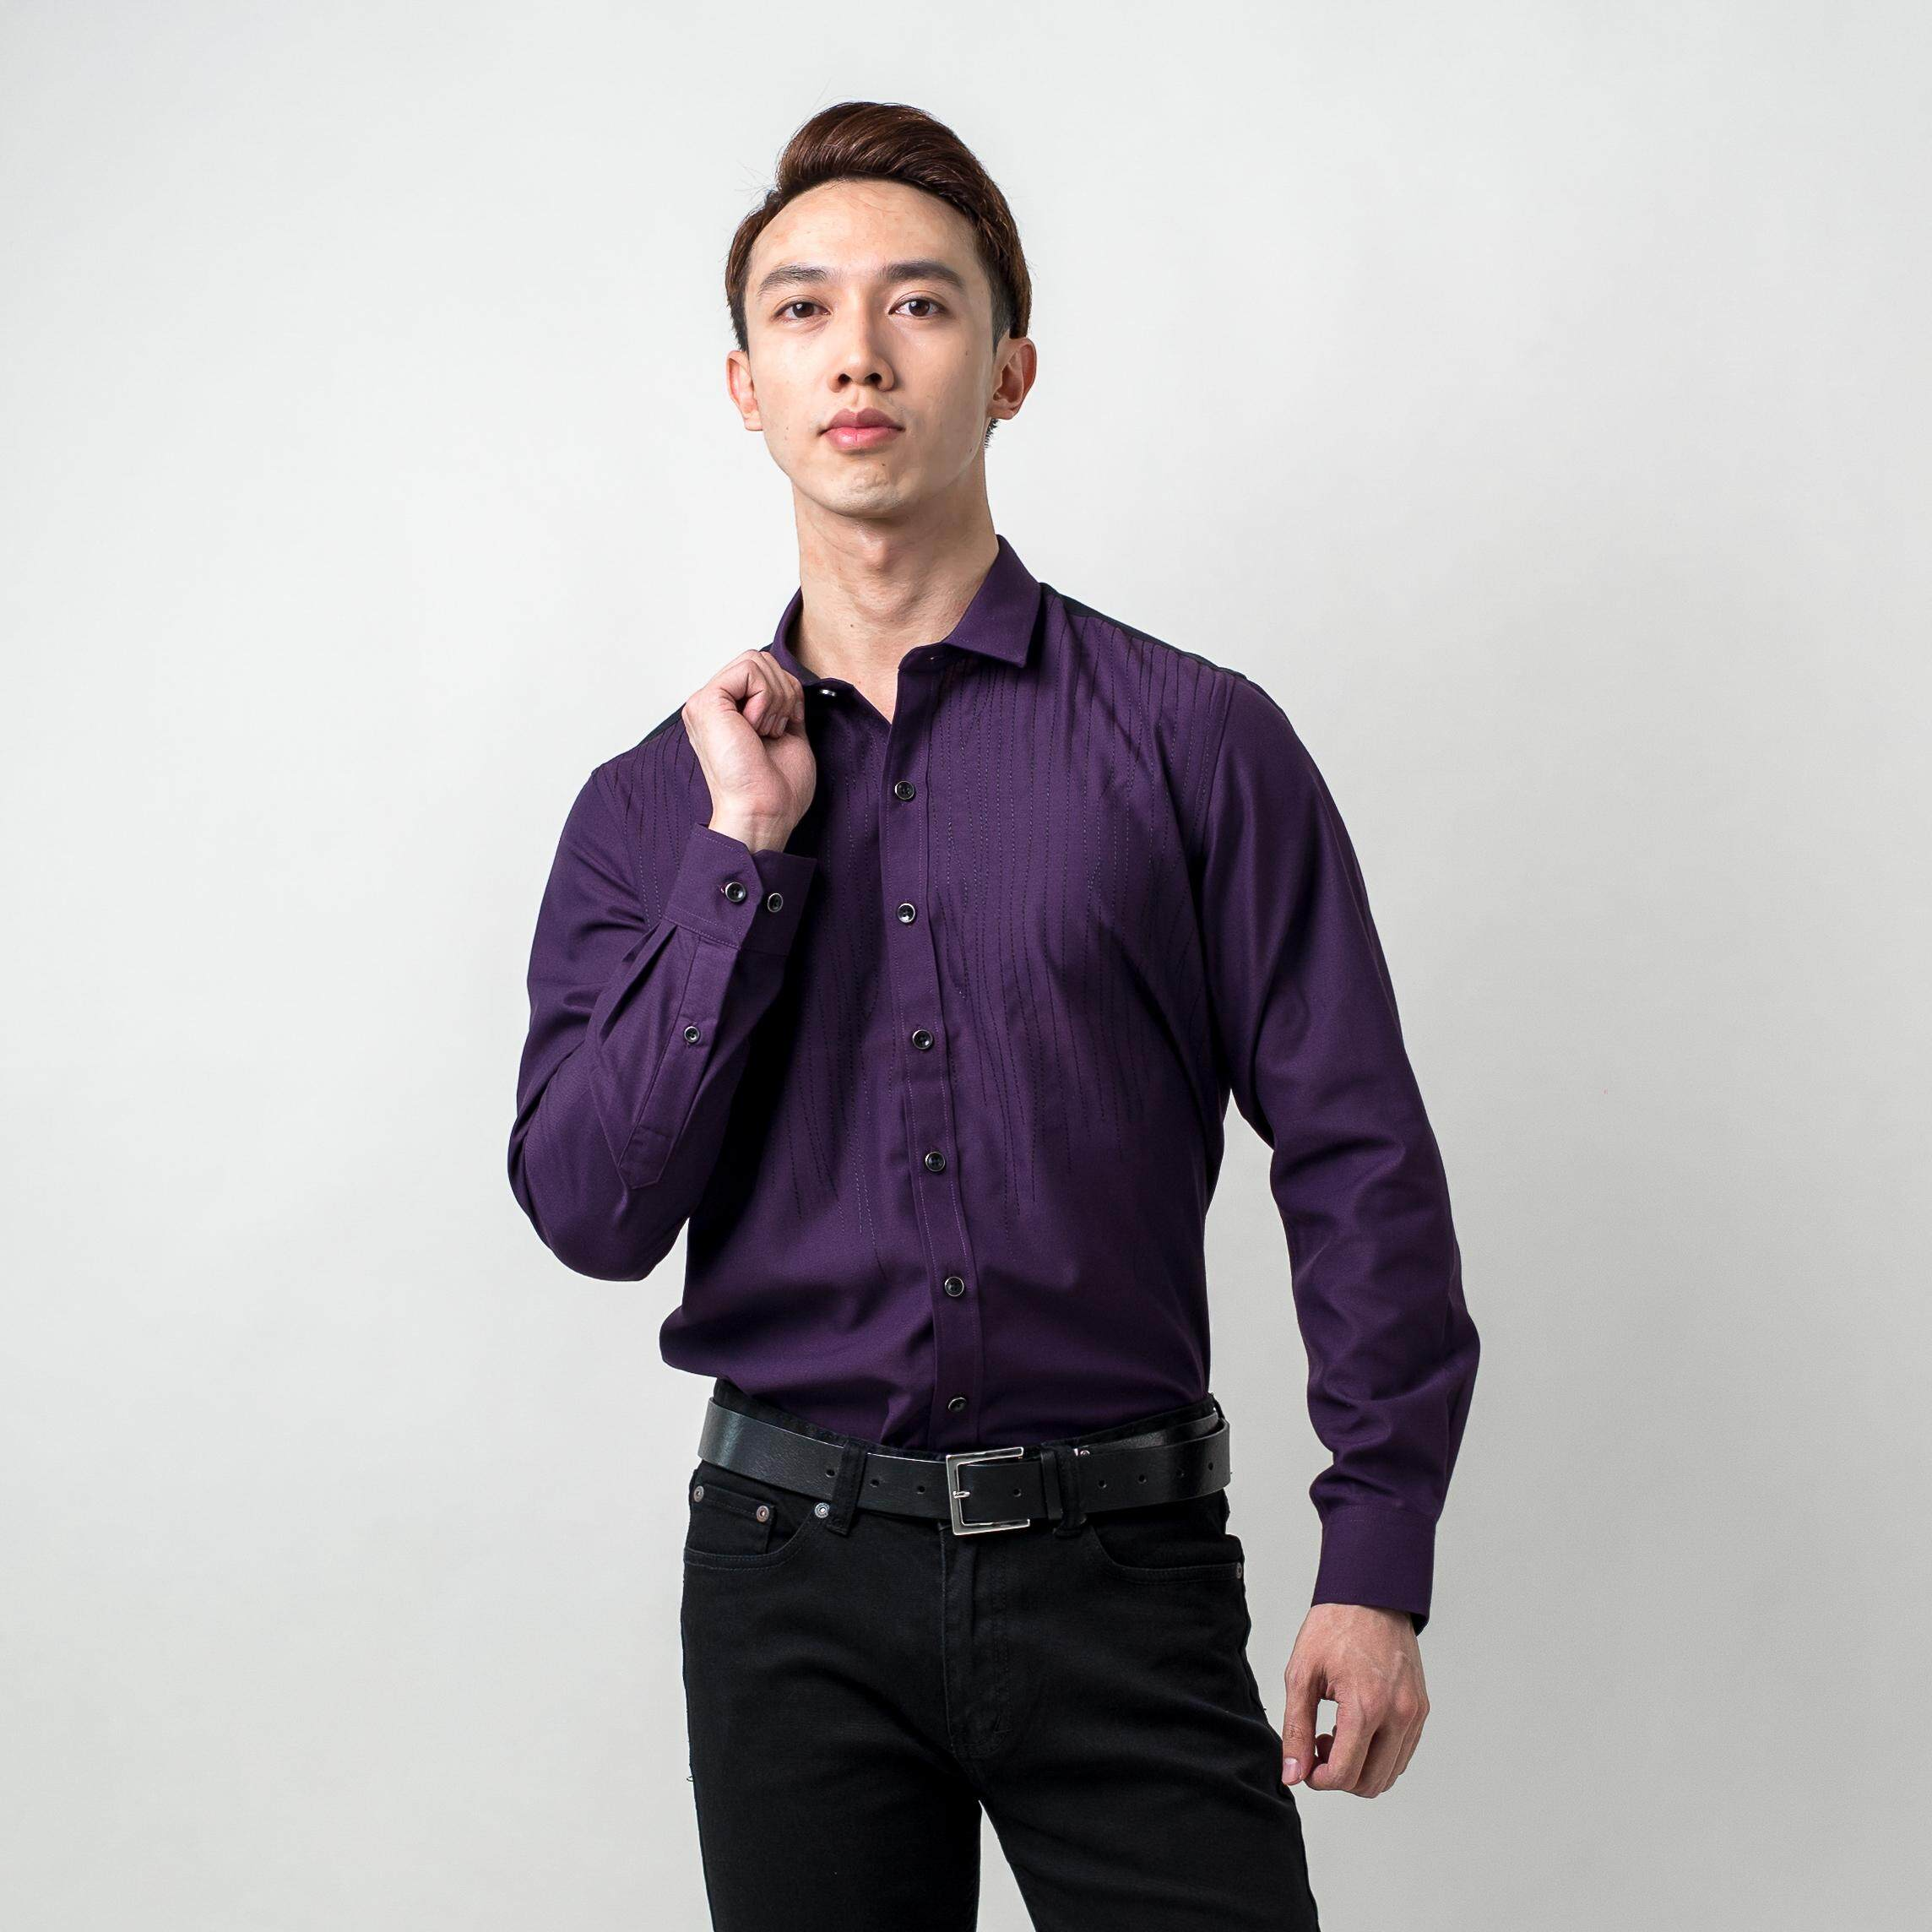 MEN'S LONG SLEEVE SHIRT - SMART LOOK + BODY EMBROIDERY DETAILING + CUT&SEW ON THE BACK B79-40429#2